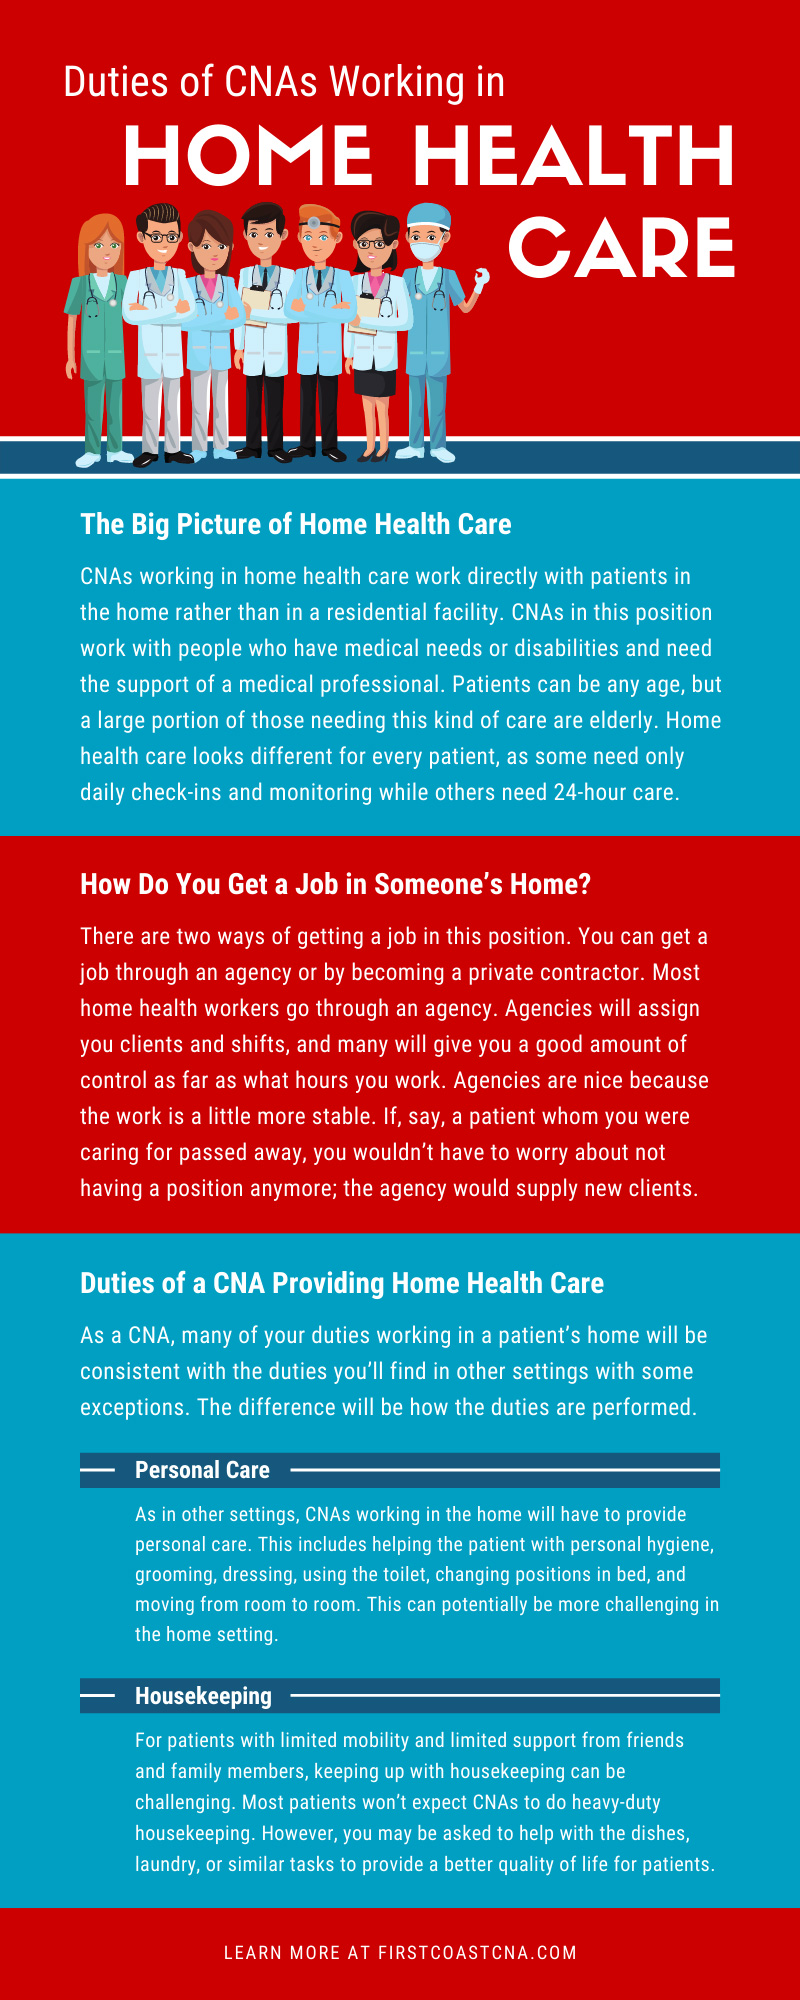 CNAs Working in Home